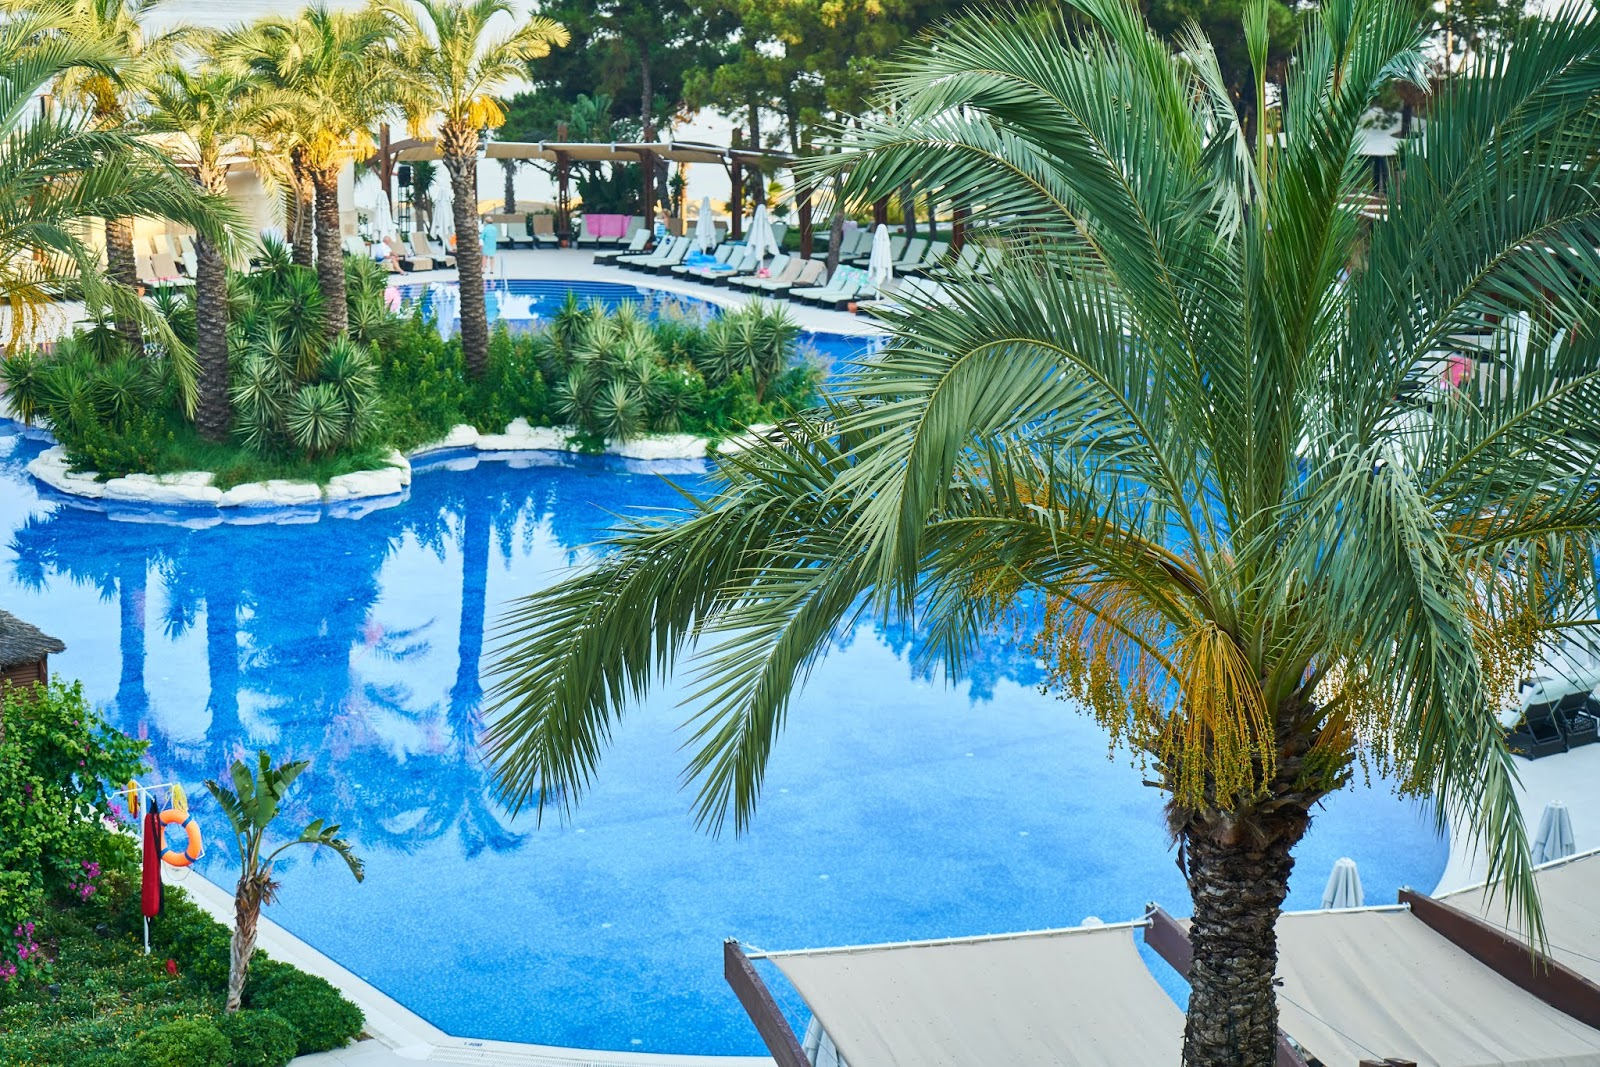 Pool Landscaping Design Ideas To Improve The Garden Appearance